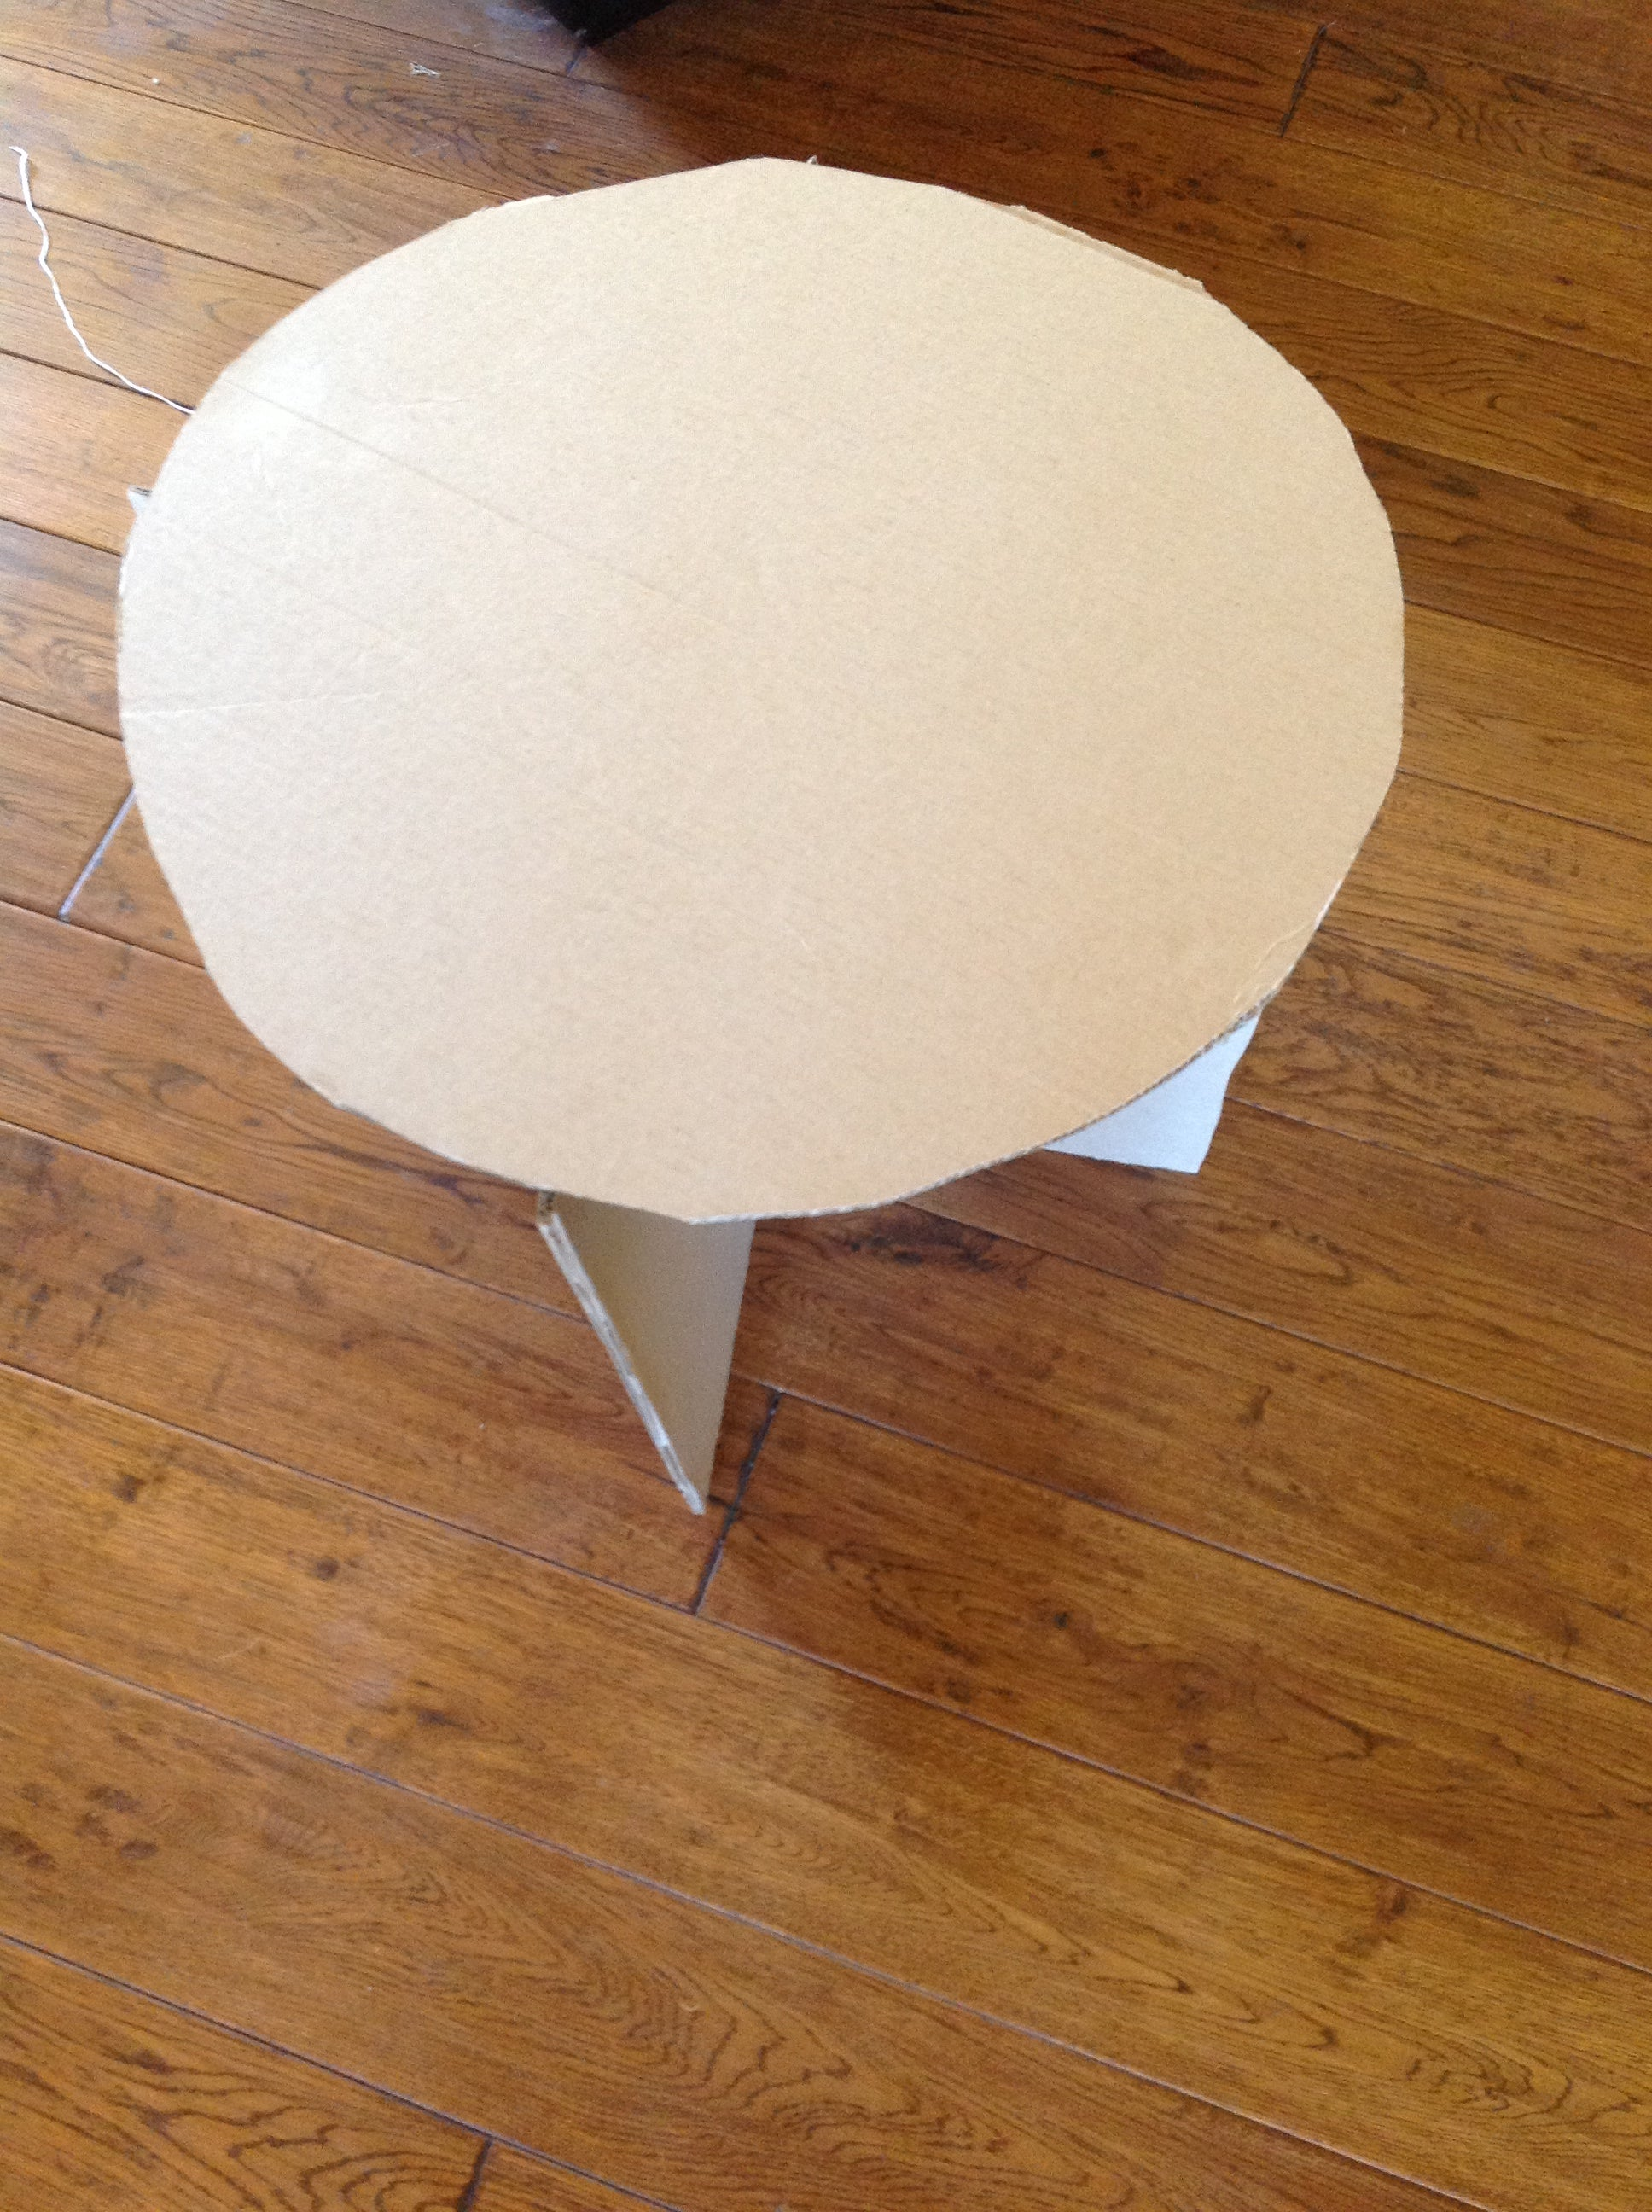 Make A Cardboard And Duct Tape Table 9 Steps